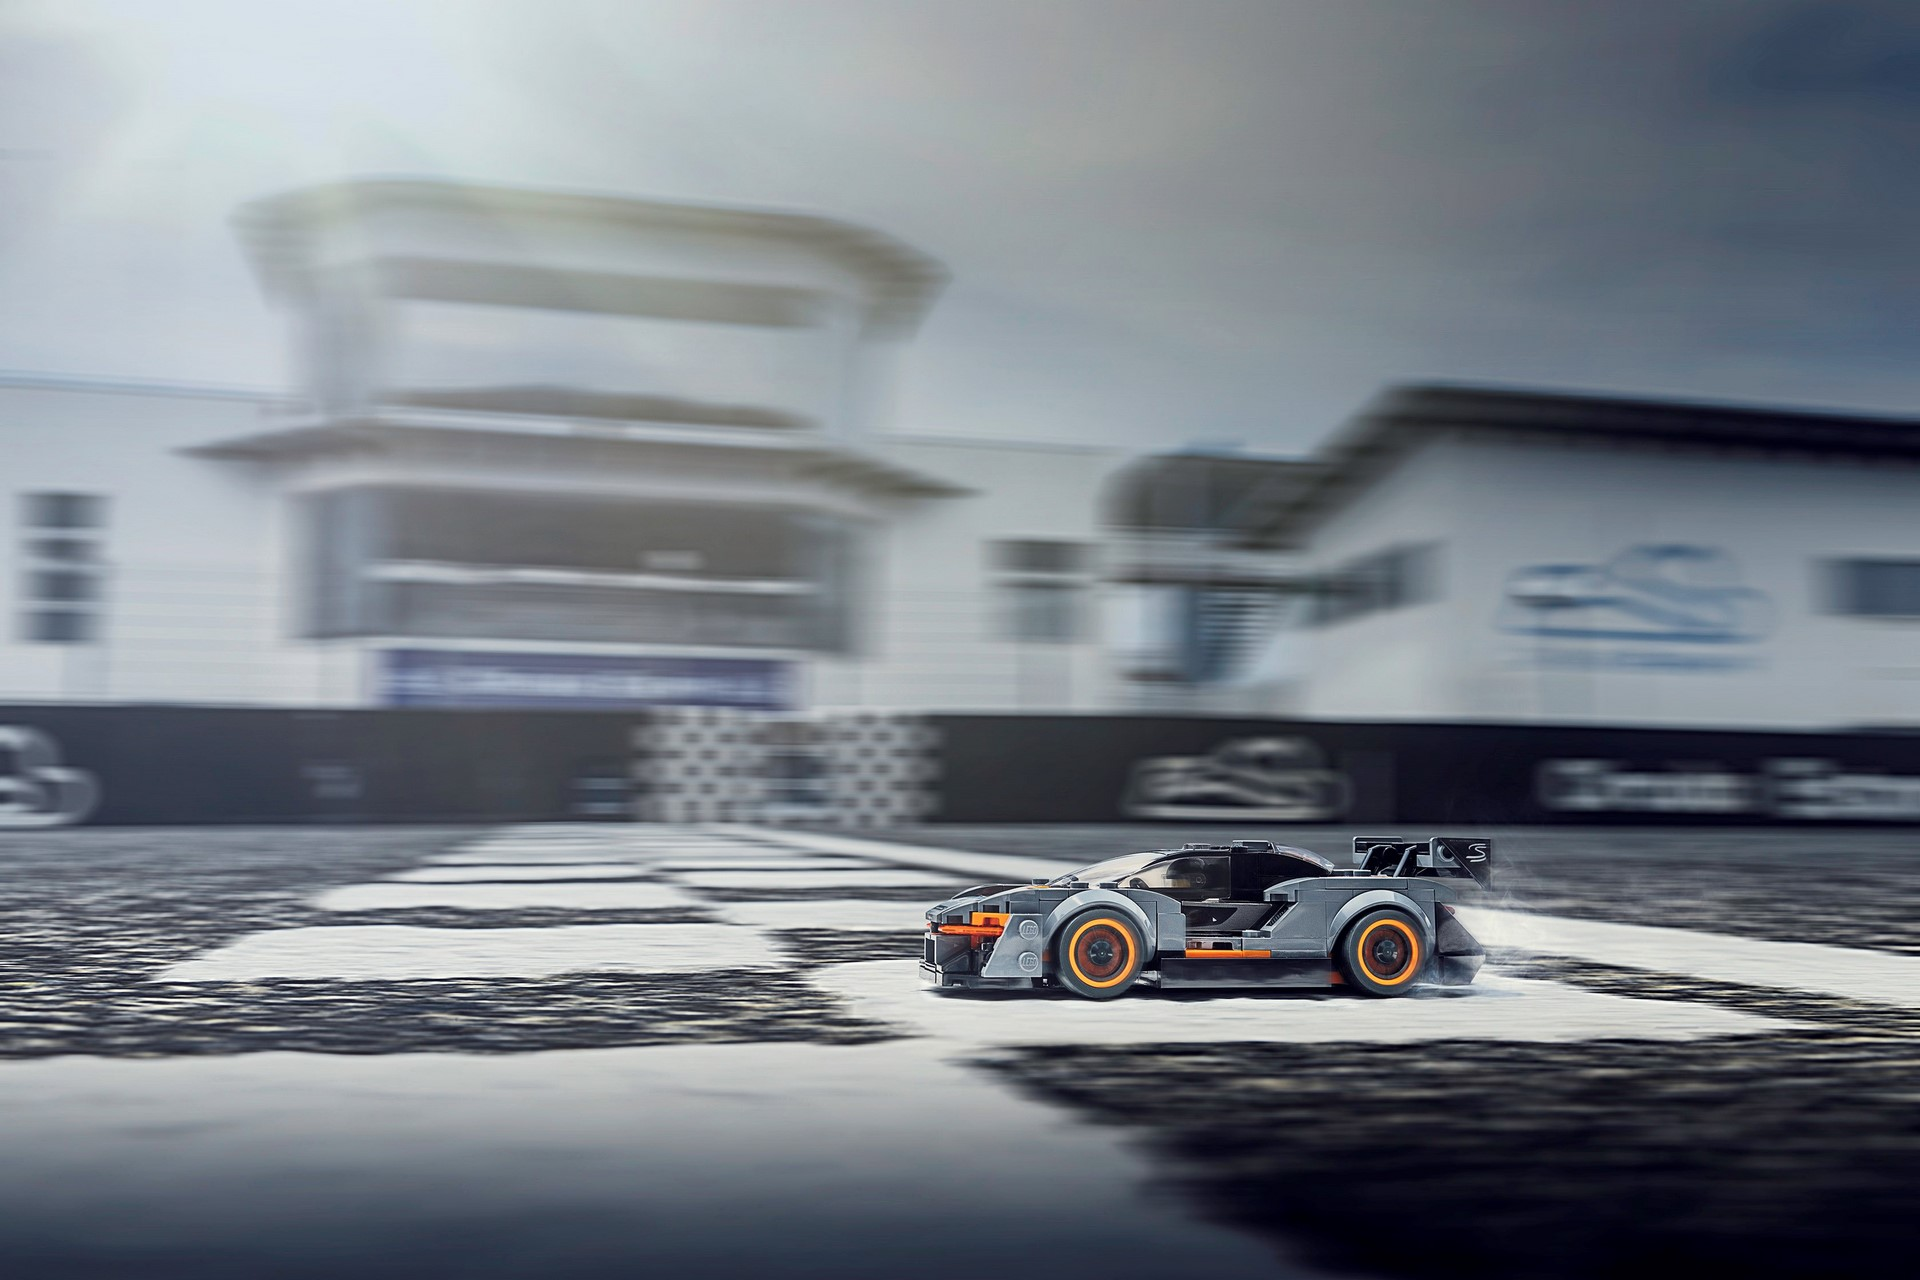 McLaren Senna Lego Speed Champions kit (4)